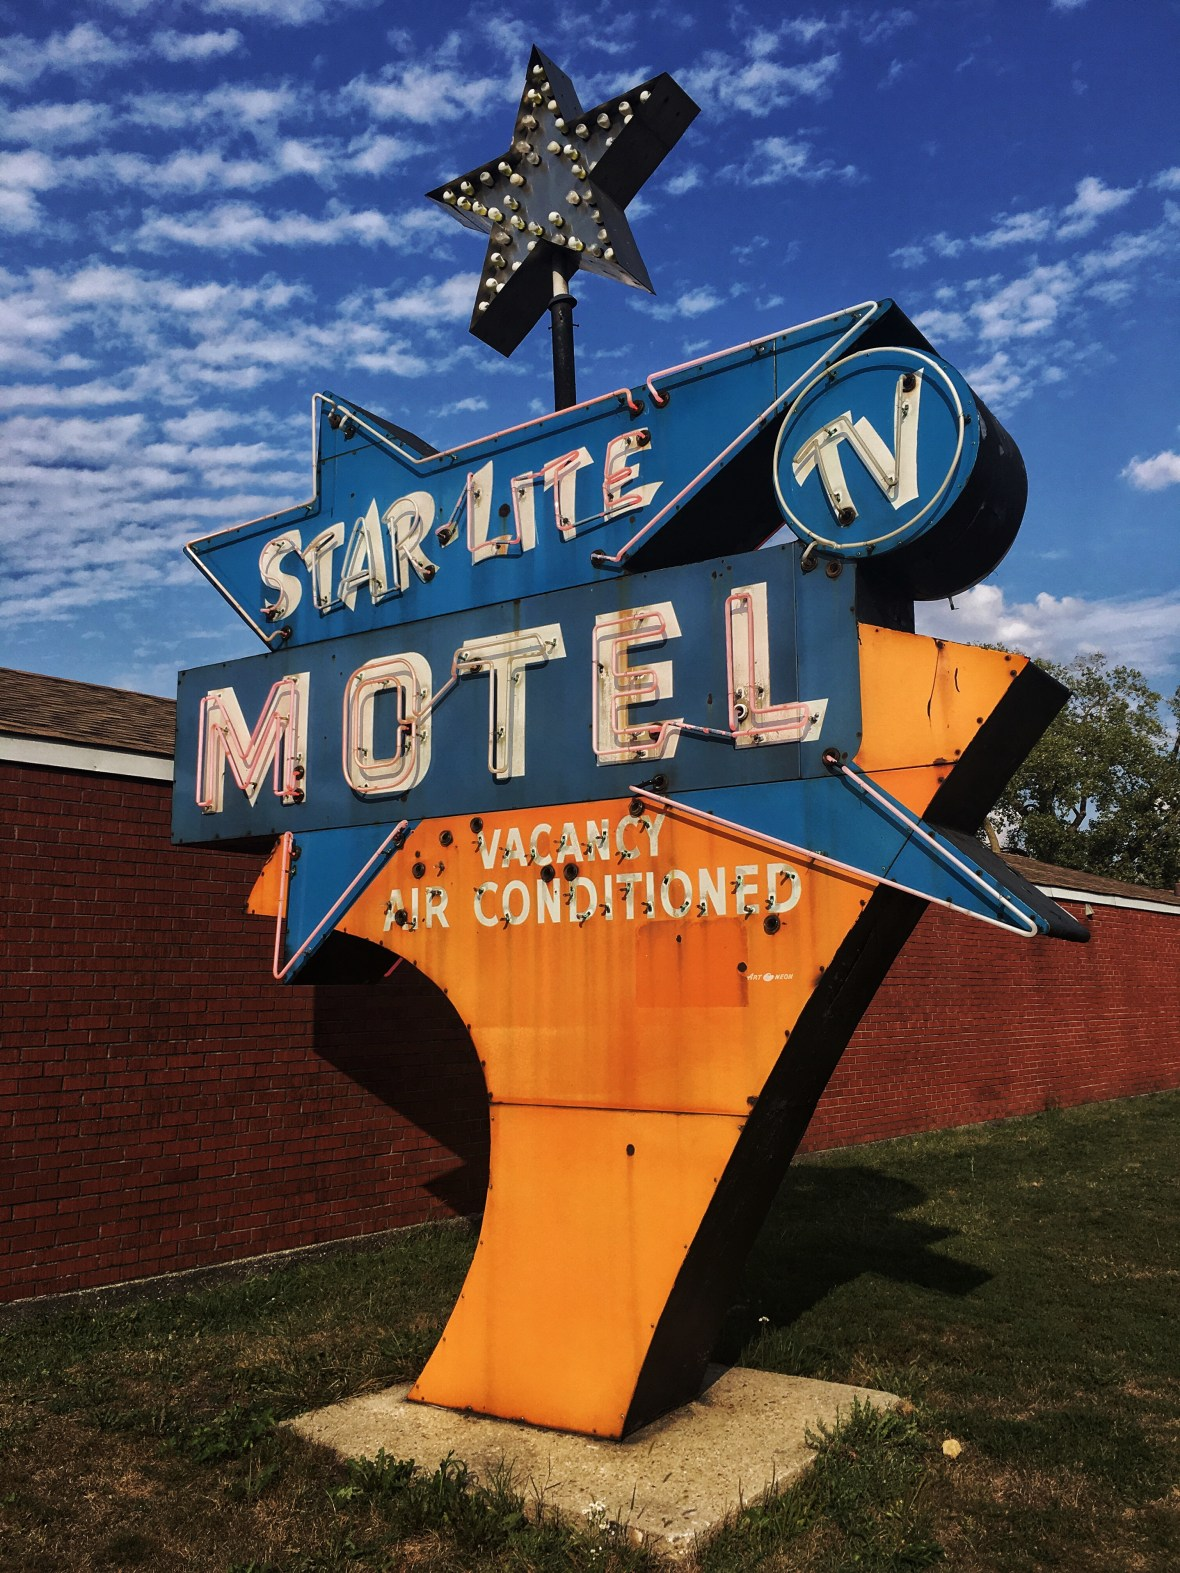 Star-Lite Motel - 466 West 162nd Street, South Holland, Illinois U.S.A. - September 26, 2017